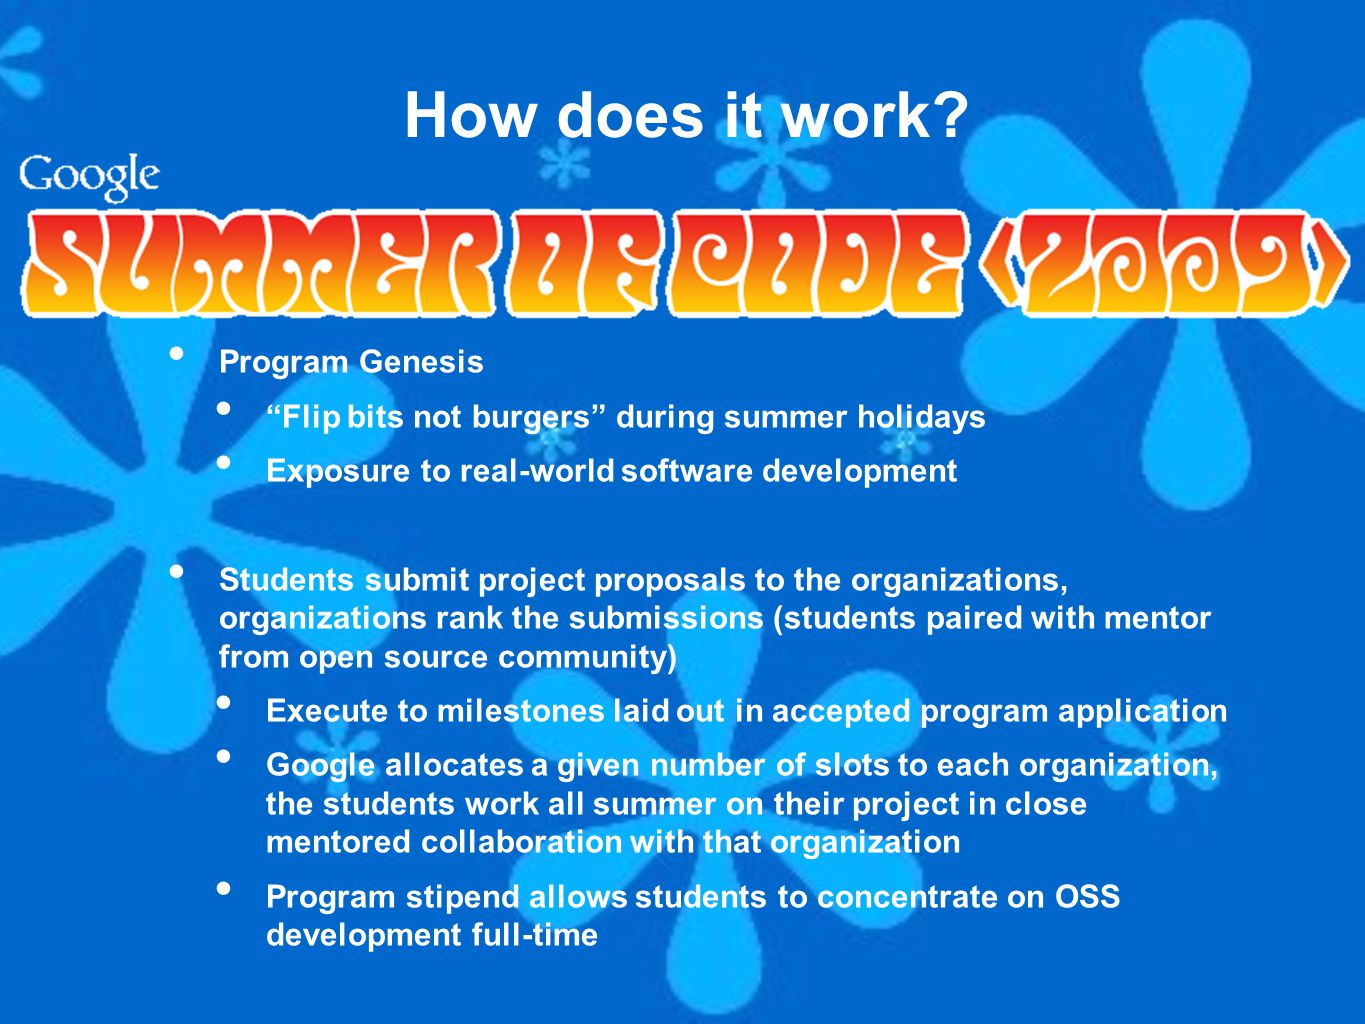 Program Genesis Flip bits not burgers during summer holidays Exposure to real-world software development Students submit project proposals to the organizations, organizations rank the submissions (students paired with mentor from open source community) Execute to milestones laid out in accepted program application Google allocates a given number of slots to each organization, the students work all summer on their project in close mentored collaboration with that organization Program stipend allows students to concentrate on OSS development full-time How does it work?